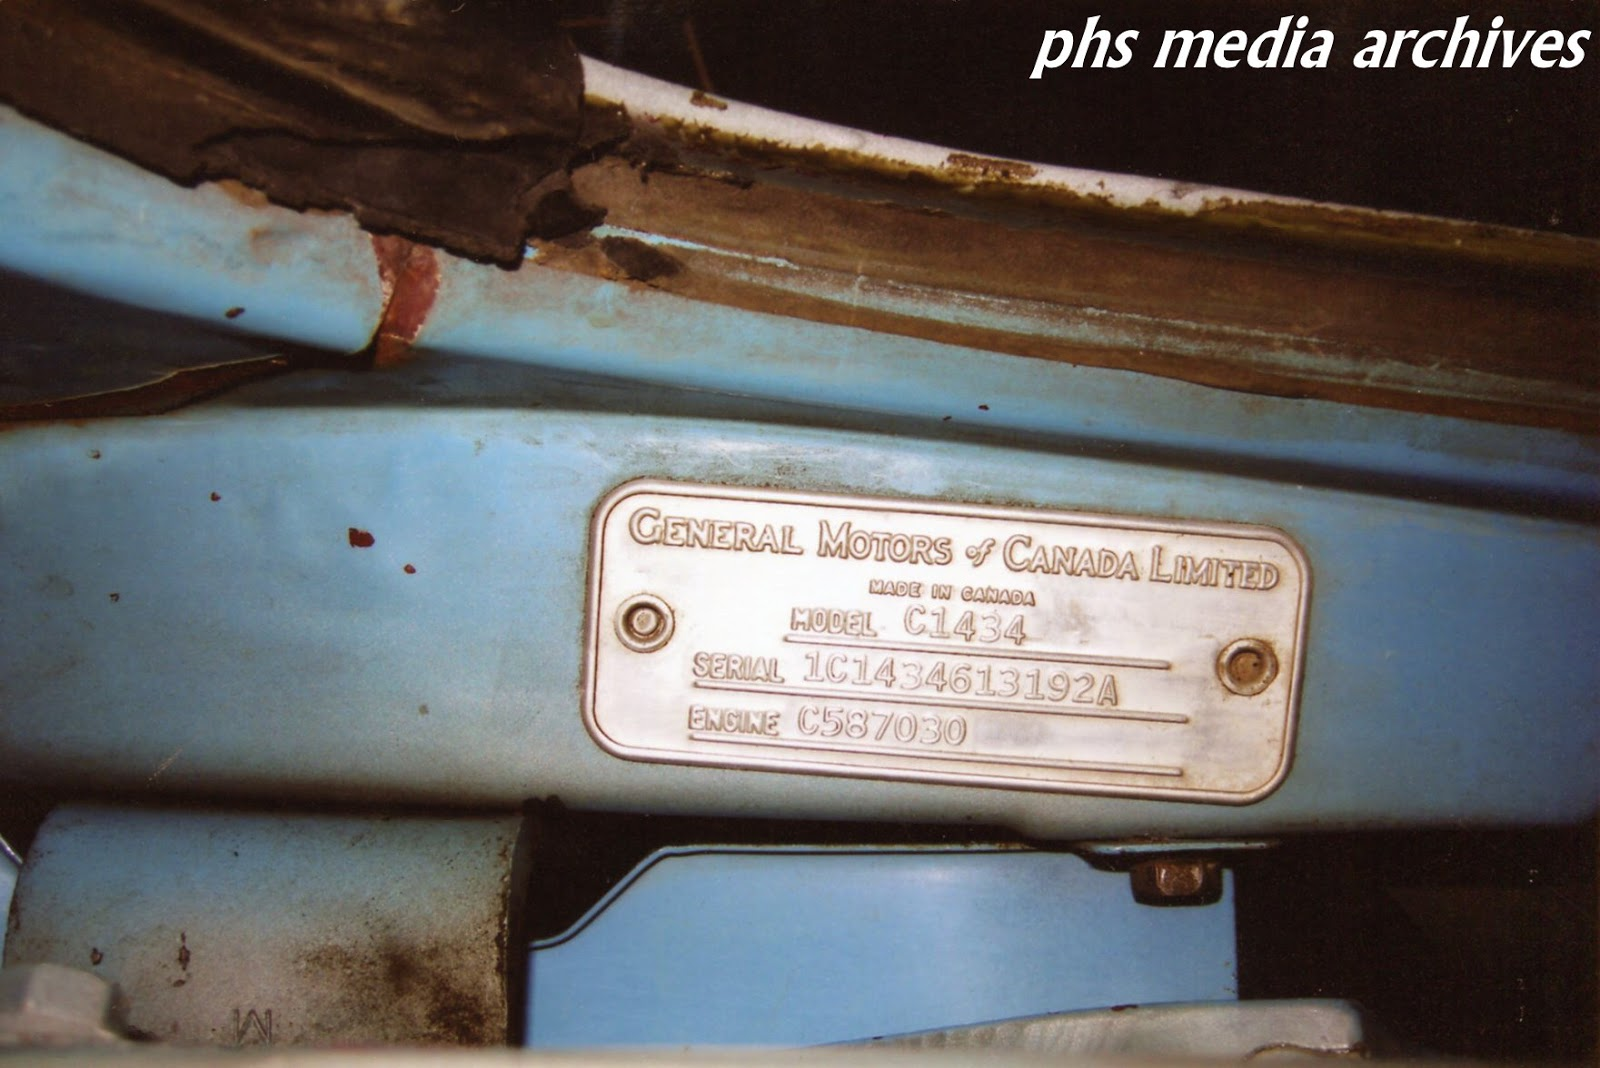 1961 Chevrolet Apache Resto Part A Initial Exam And Tear Down 1960 Studebaker Lark Wiring Diagram Data Plate Reveals Its Exactly What Supposed To Be Half Ton Conventional Cab Fleetside